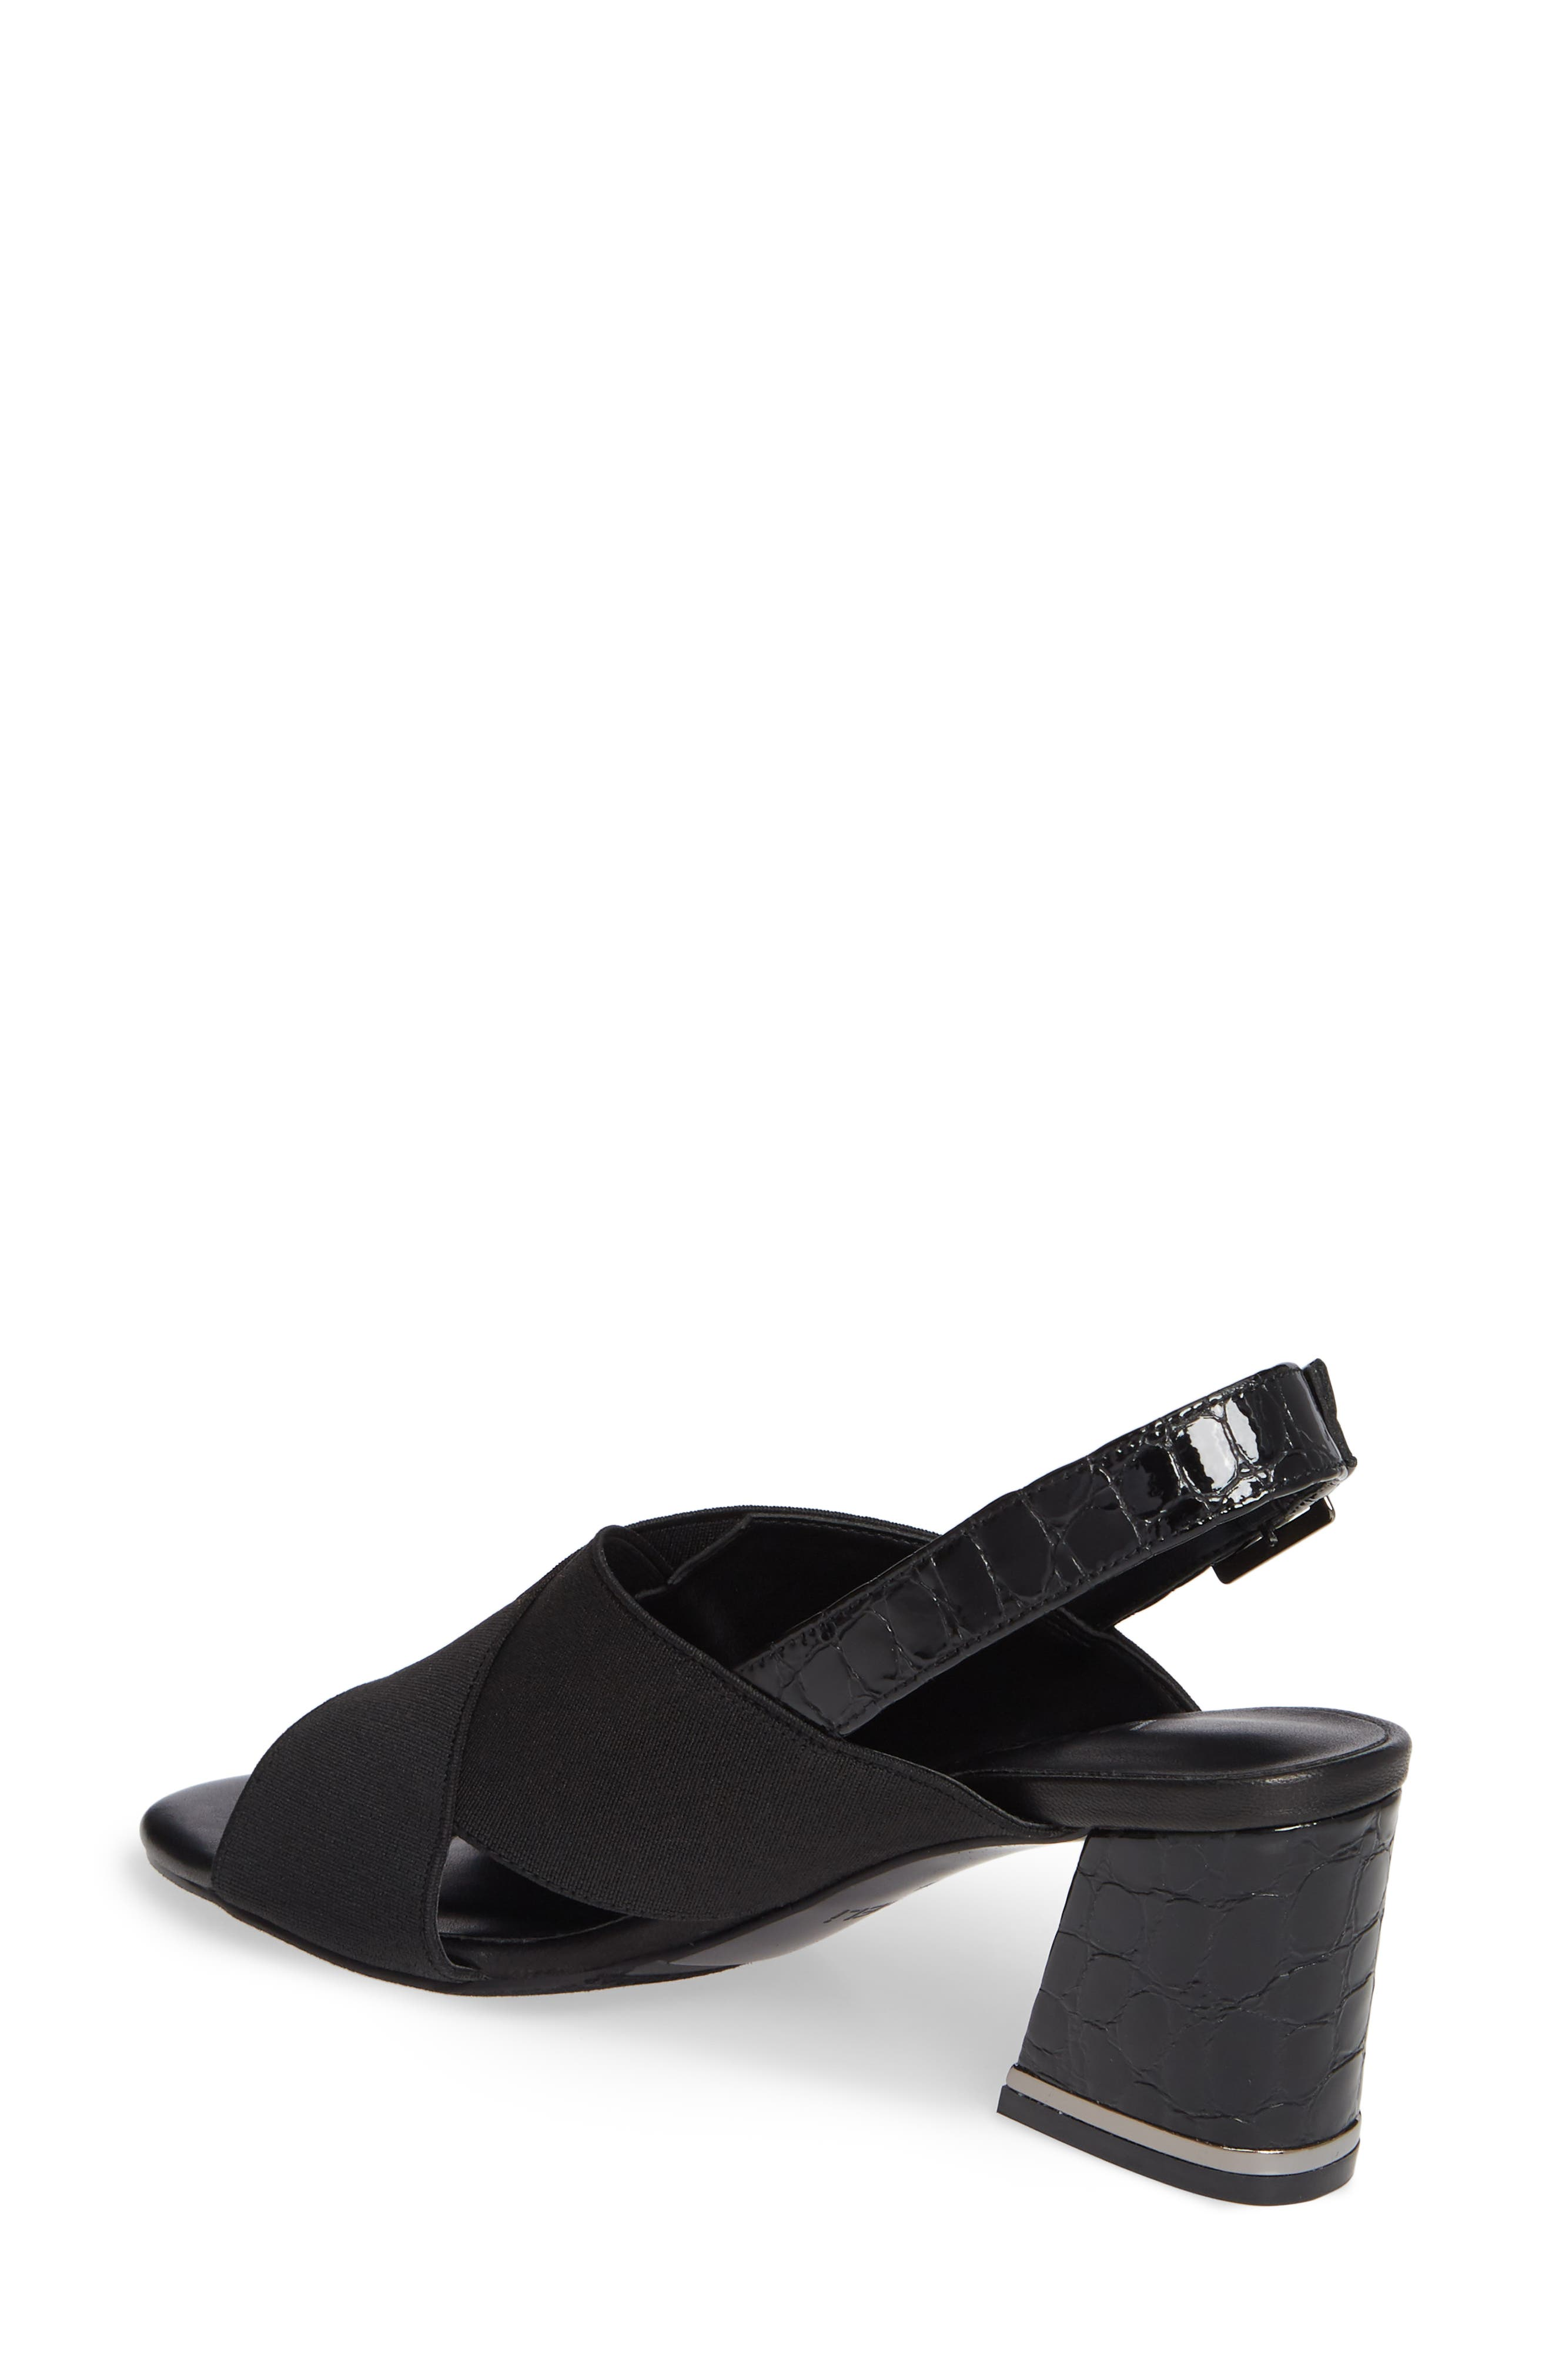 Bamba Slingback Sandal,                             Alternate thumbnail 2, color,                             BLACK